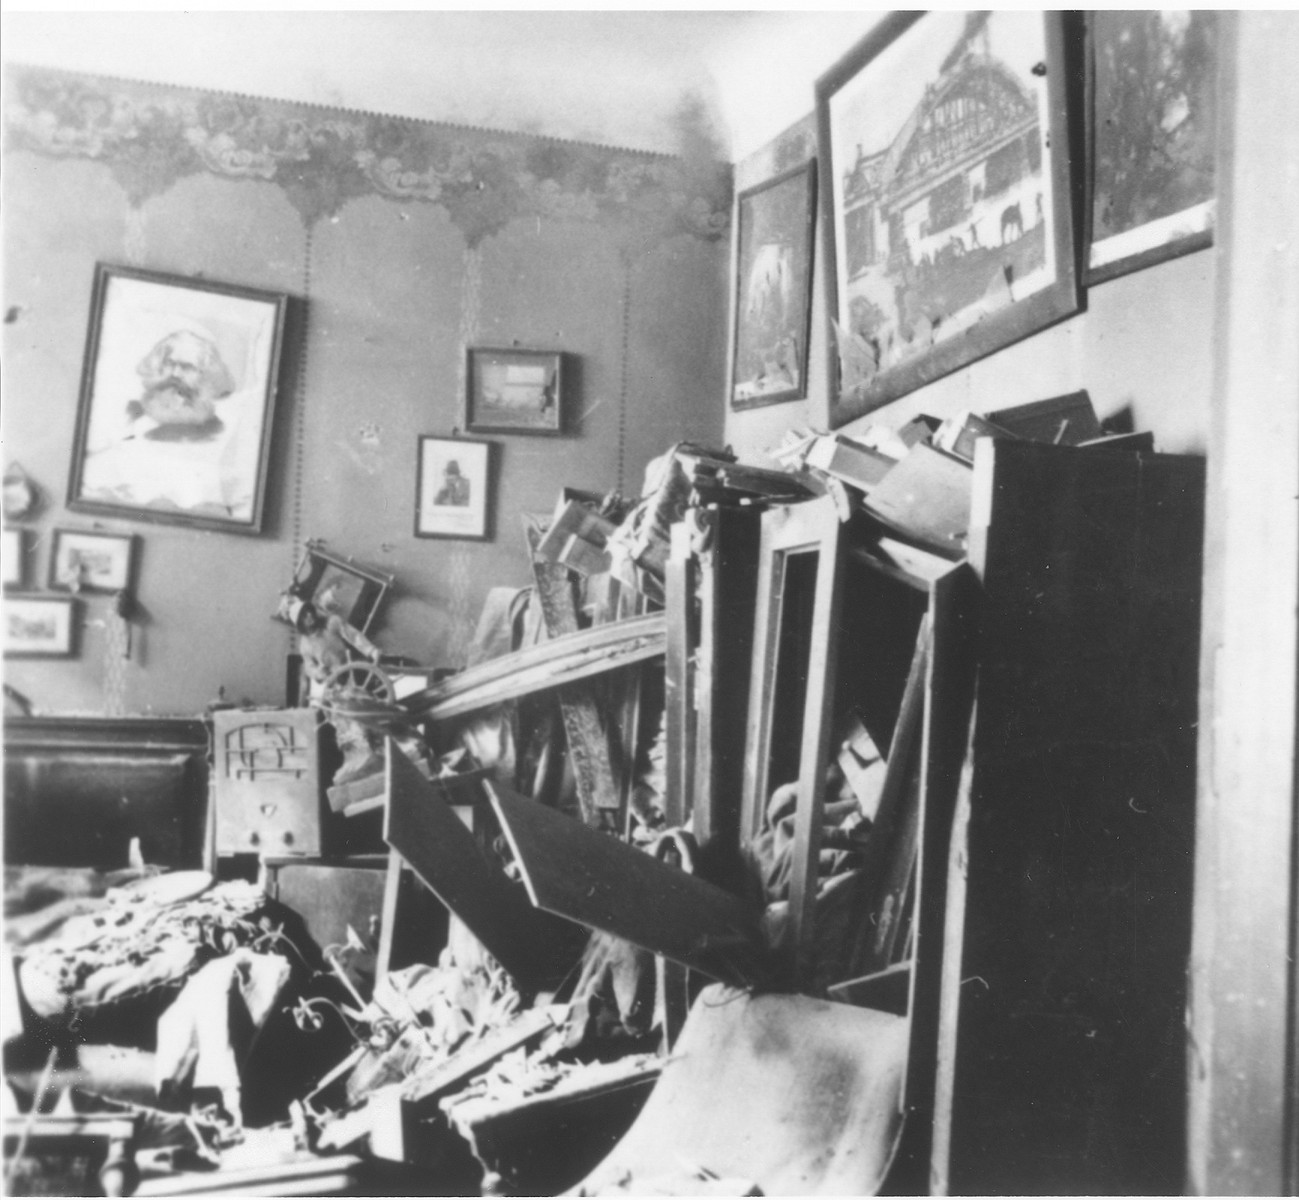 A stereoscoptic image depicting the vandalized apartment of a German worker.  A defaced portrait of Karl Marx hangs on the wall.